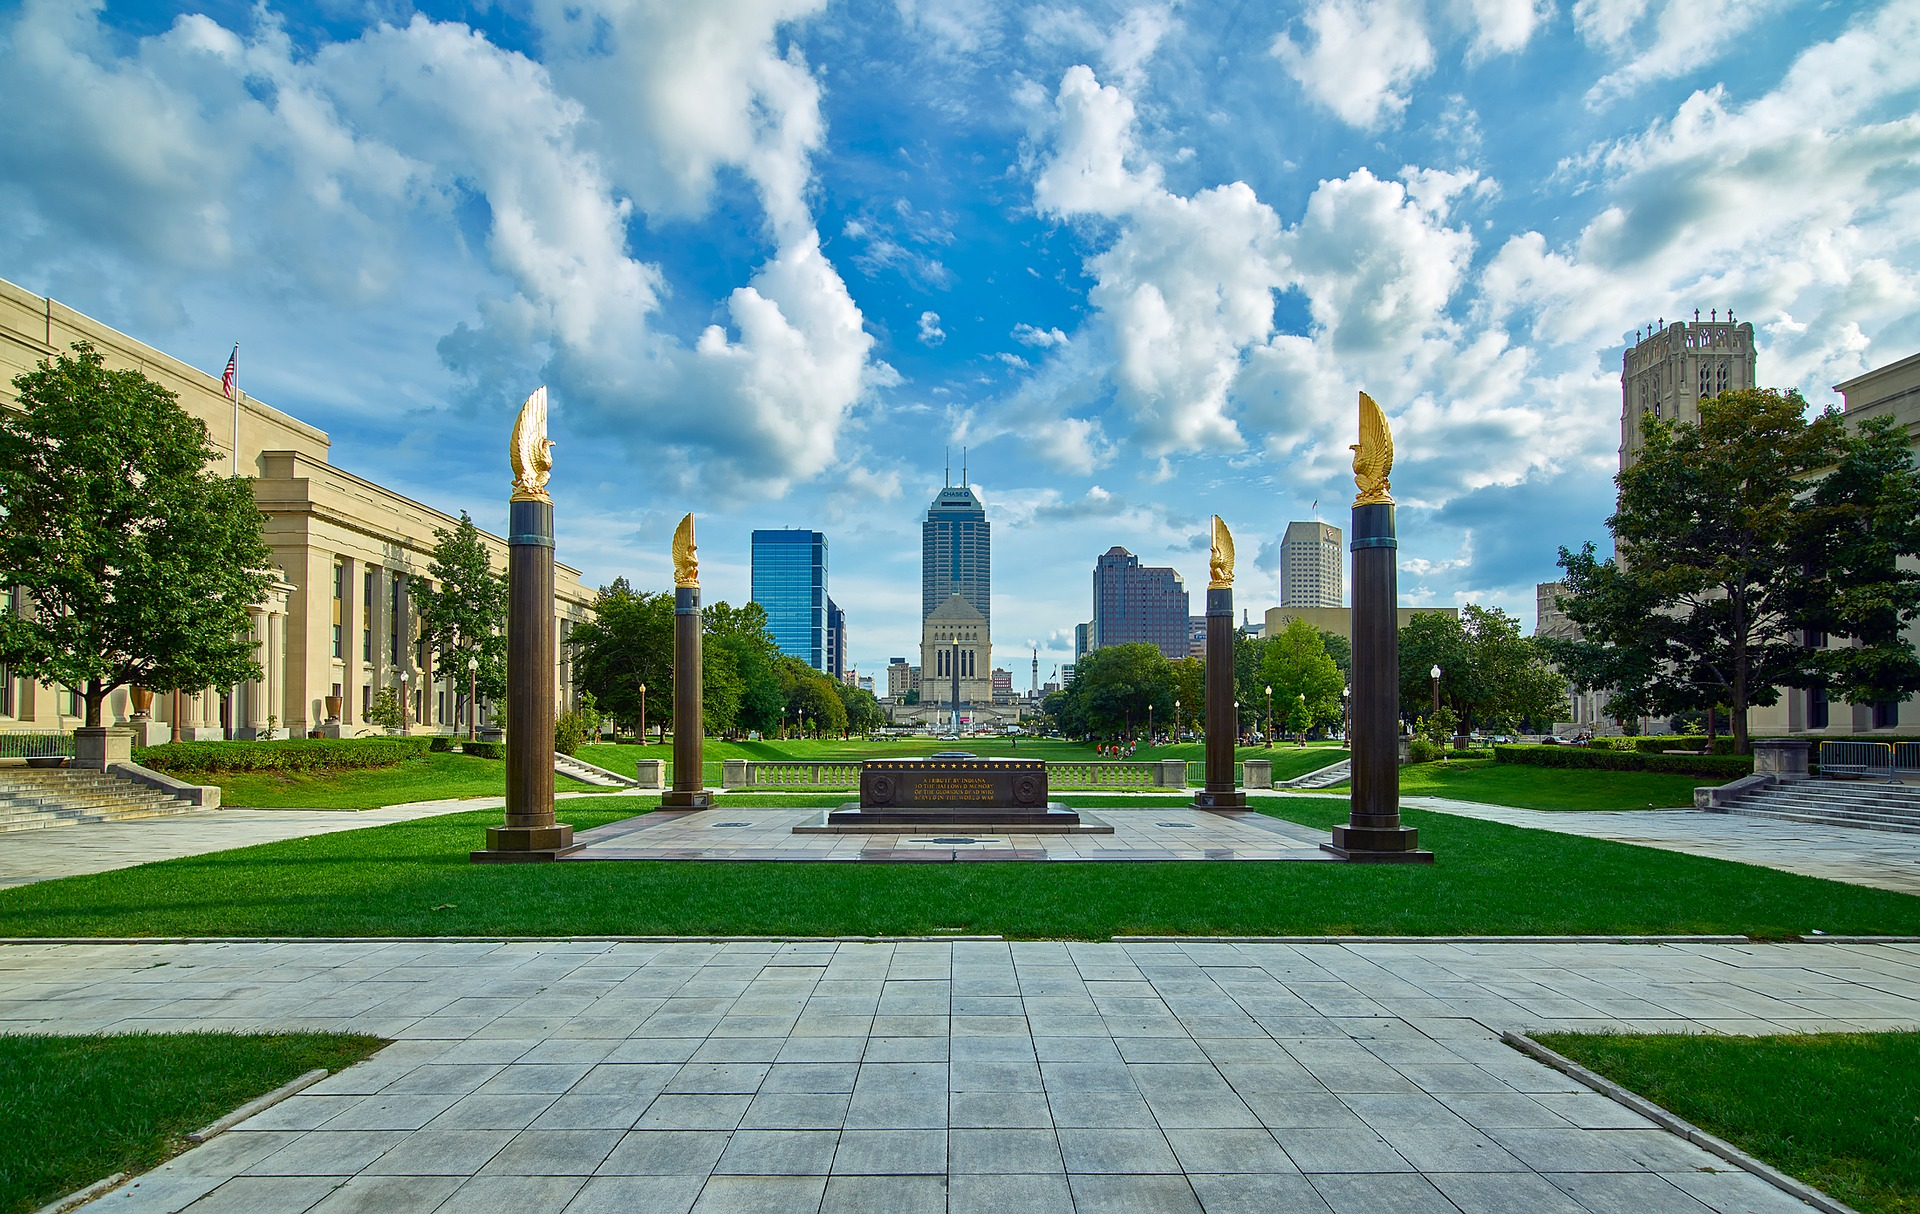 Image of the American Legion Mall in Indianapolis, with the skyline in the background. There is a bright blue sky, and bright green grass, in the center is a memorial, surrounded by 4 columns.